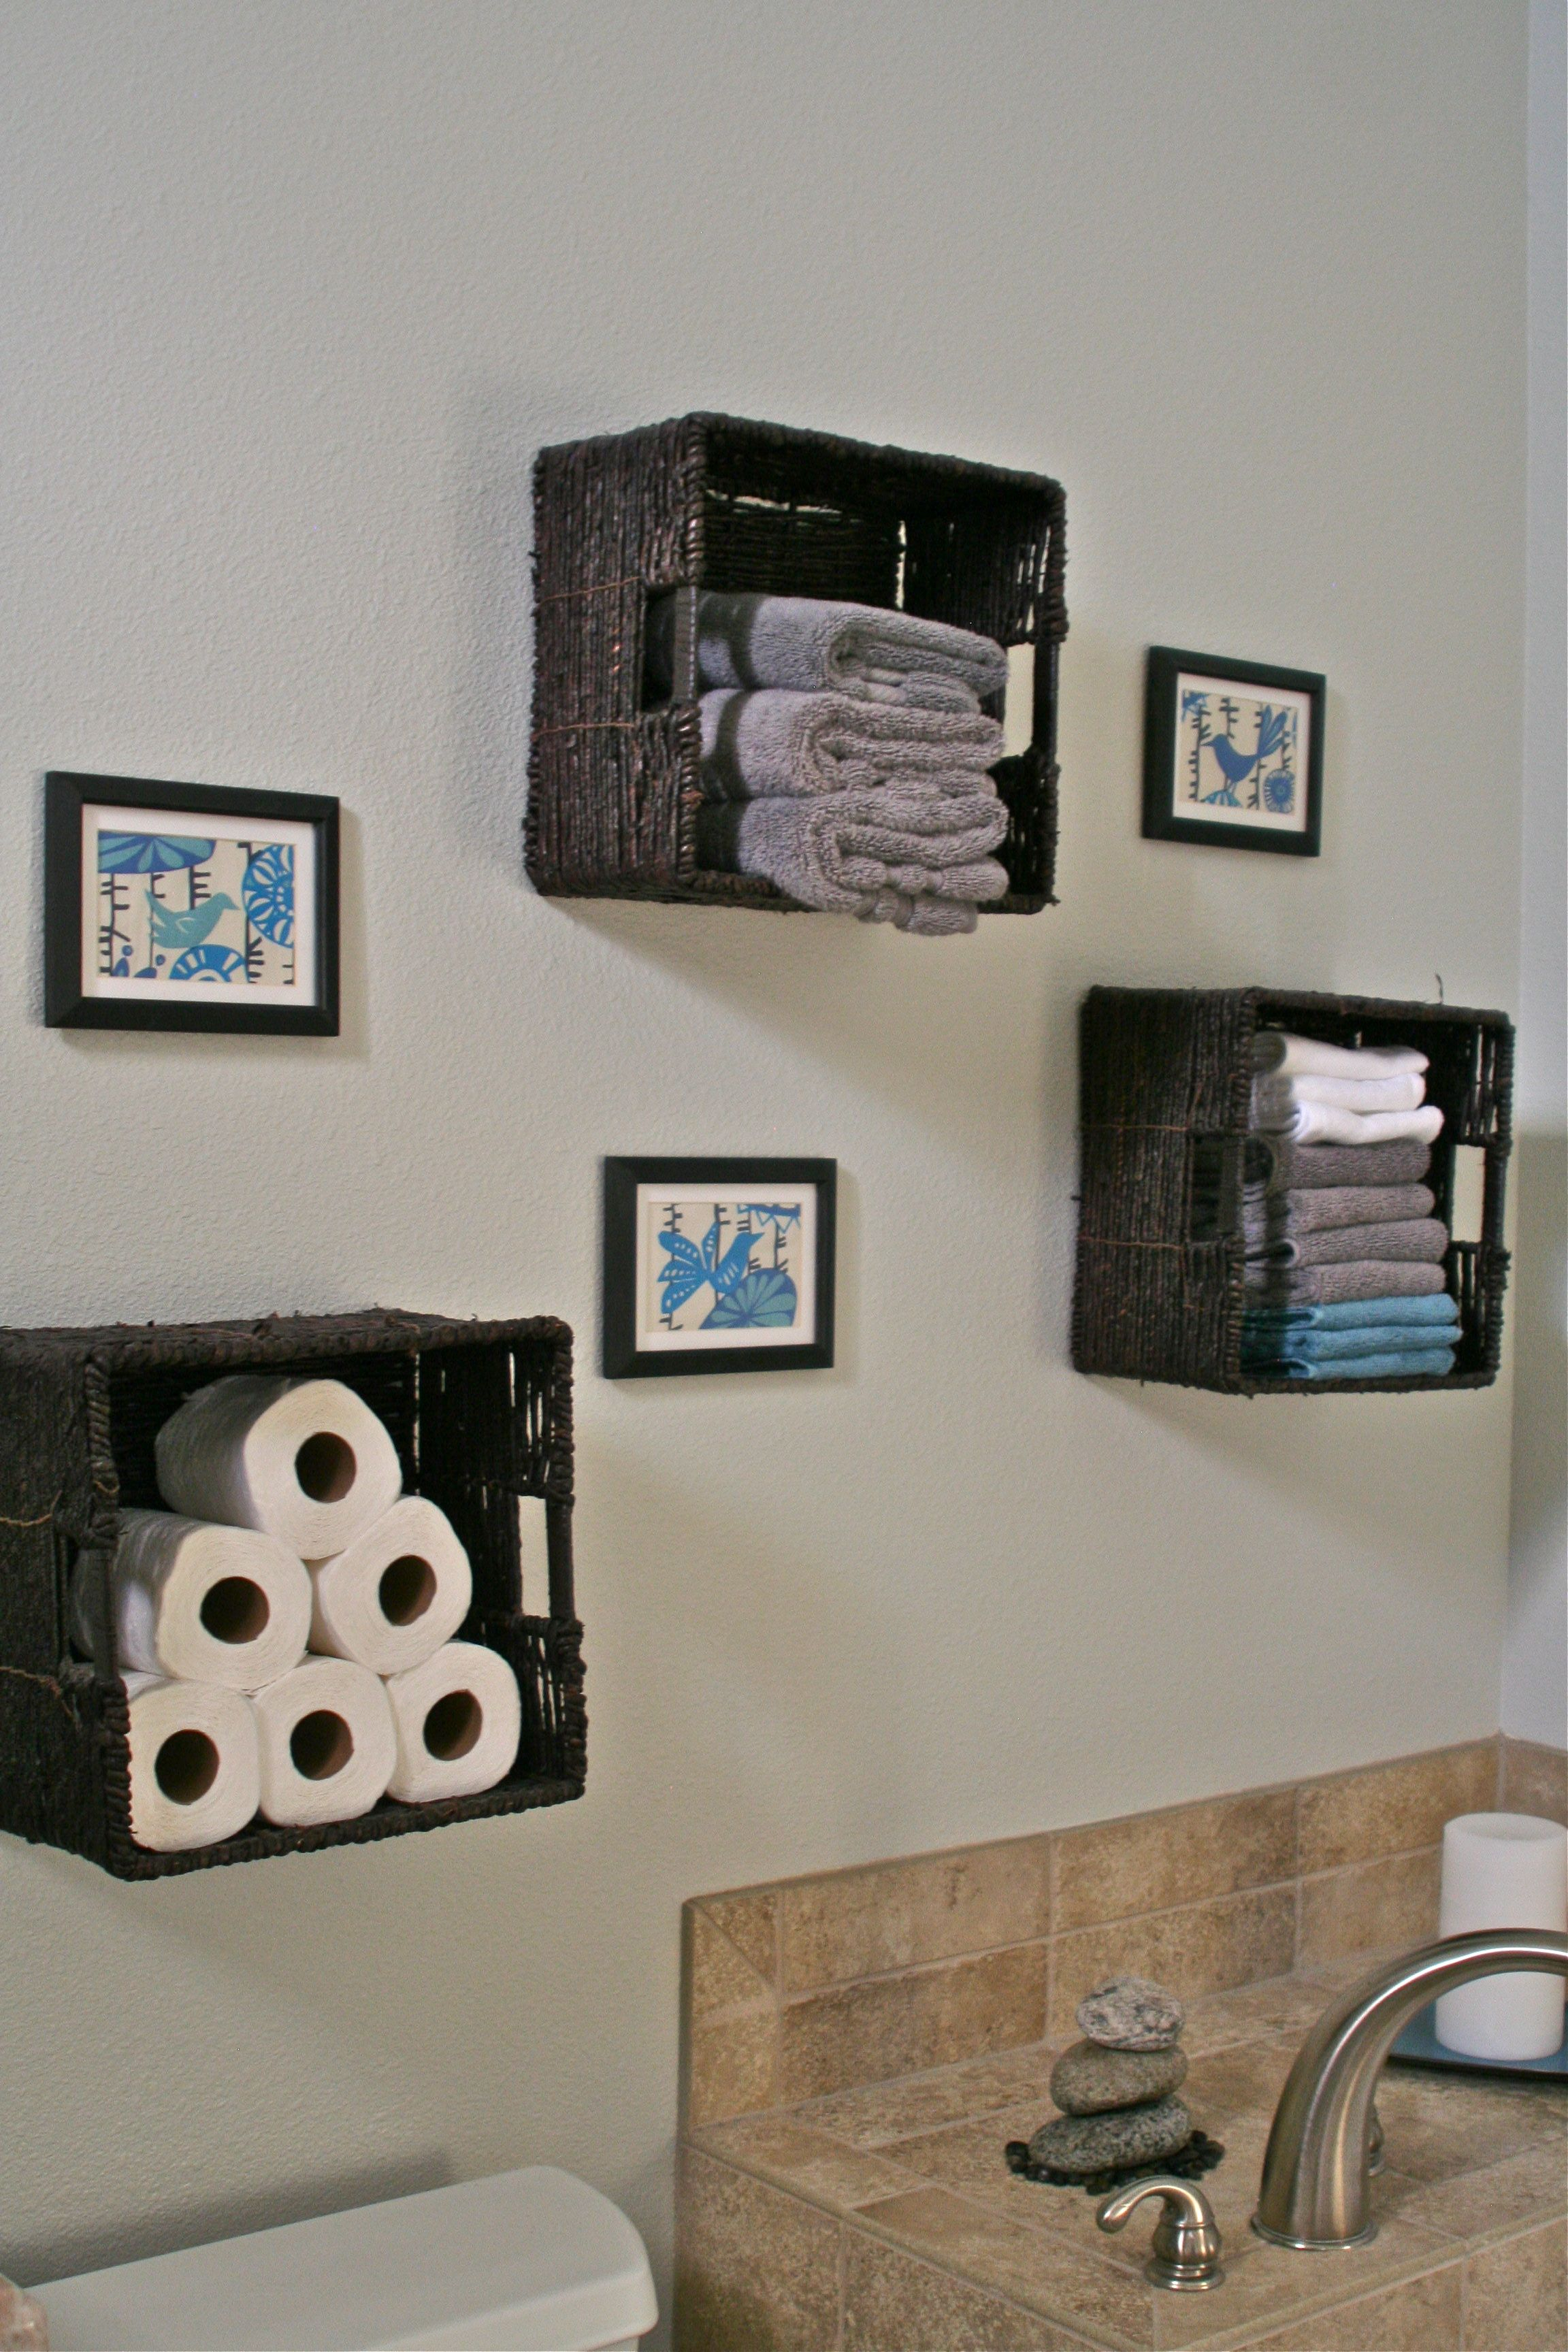 51 Amazing Small Bathroom Storage Ideas For 2018 Best for sizing 2304 X 3456